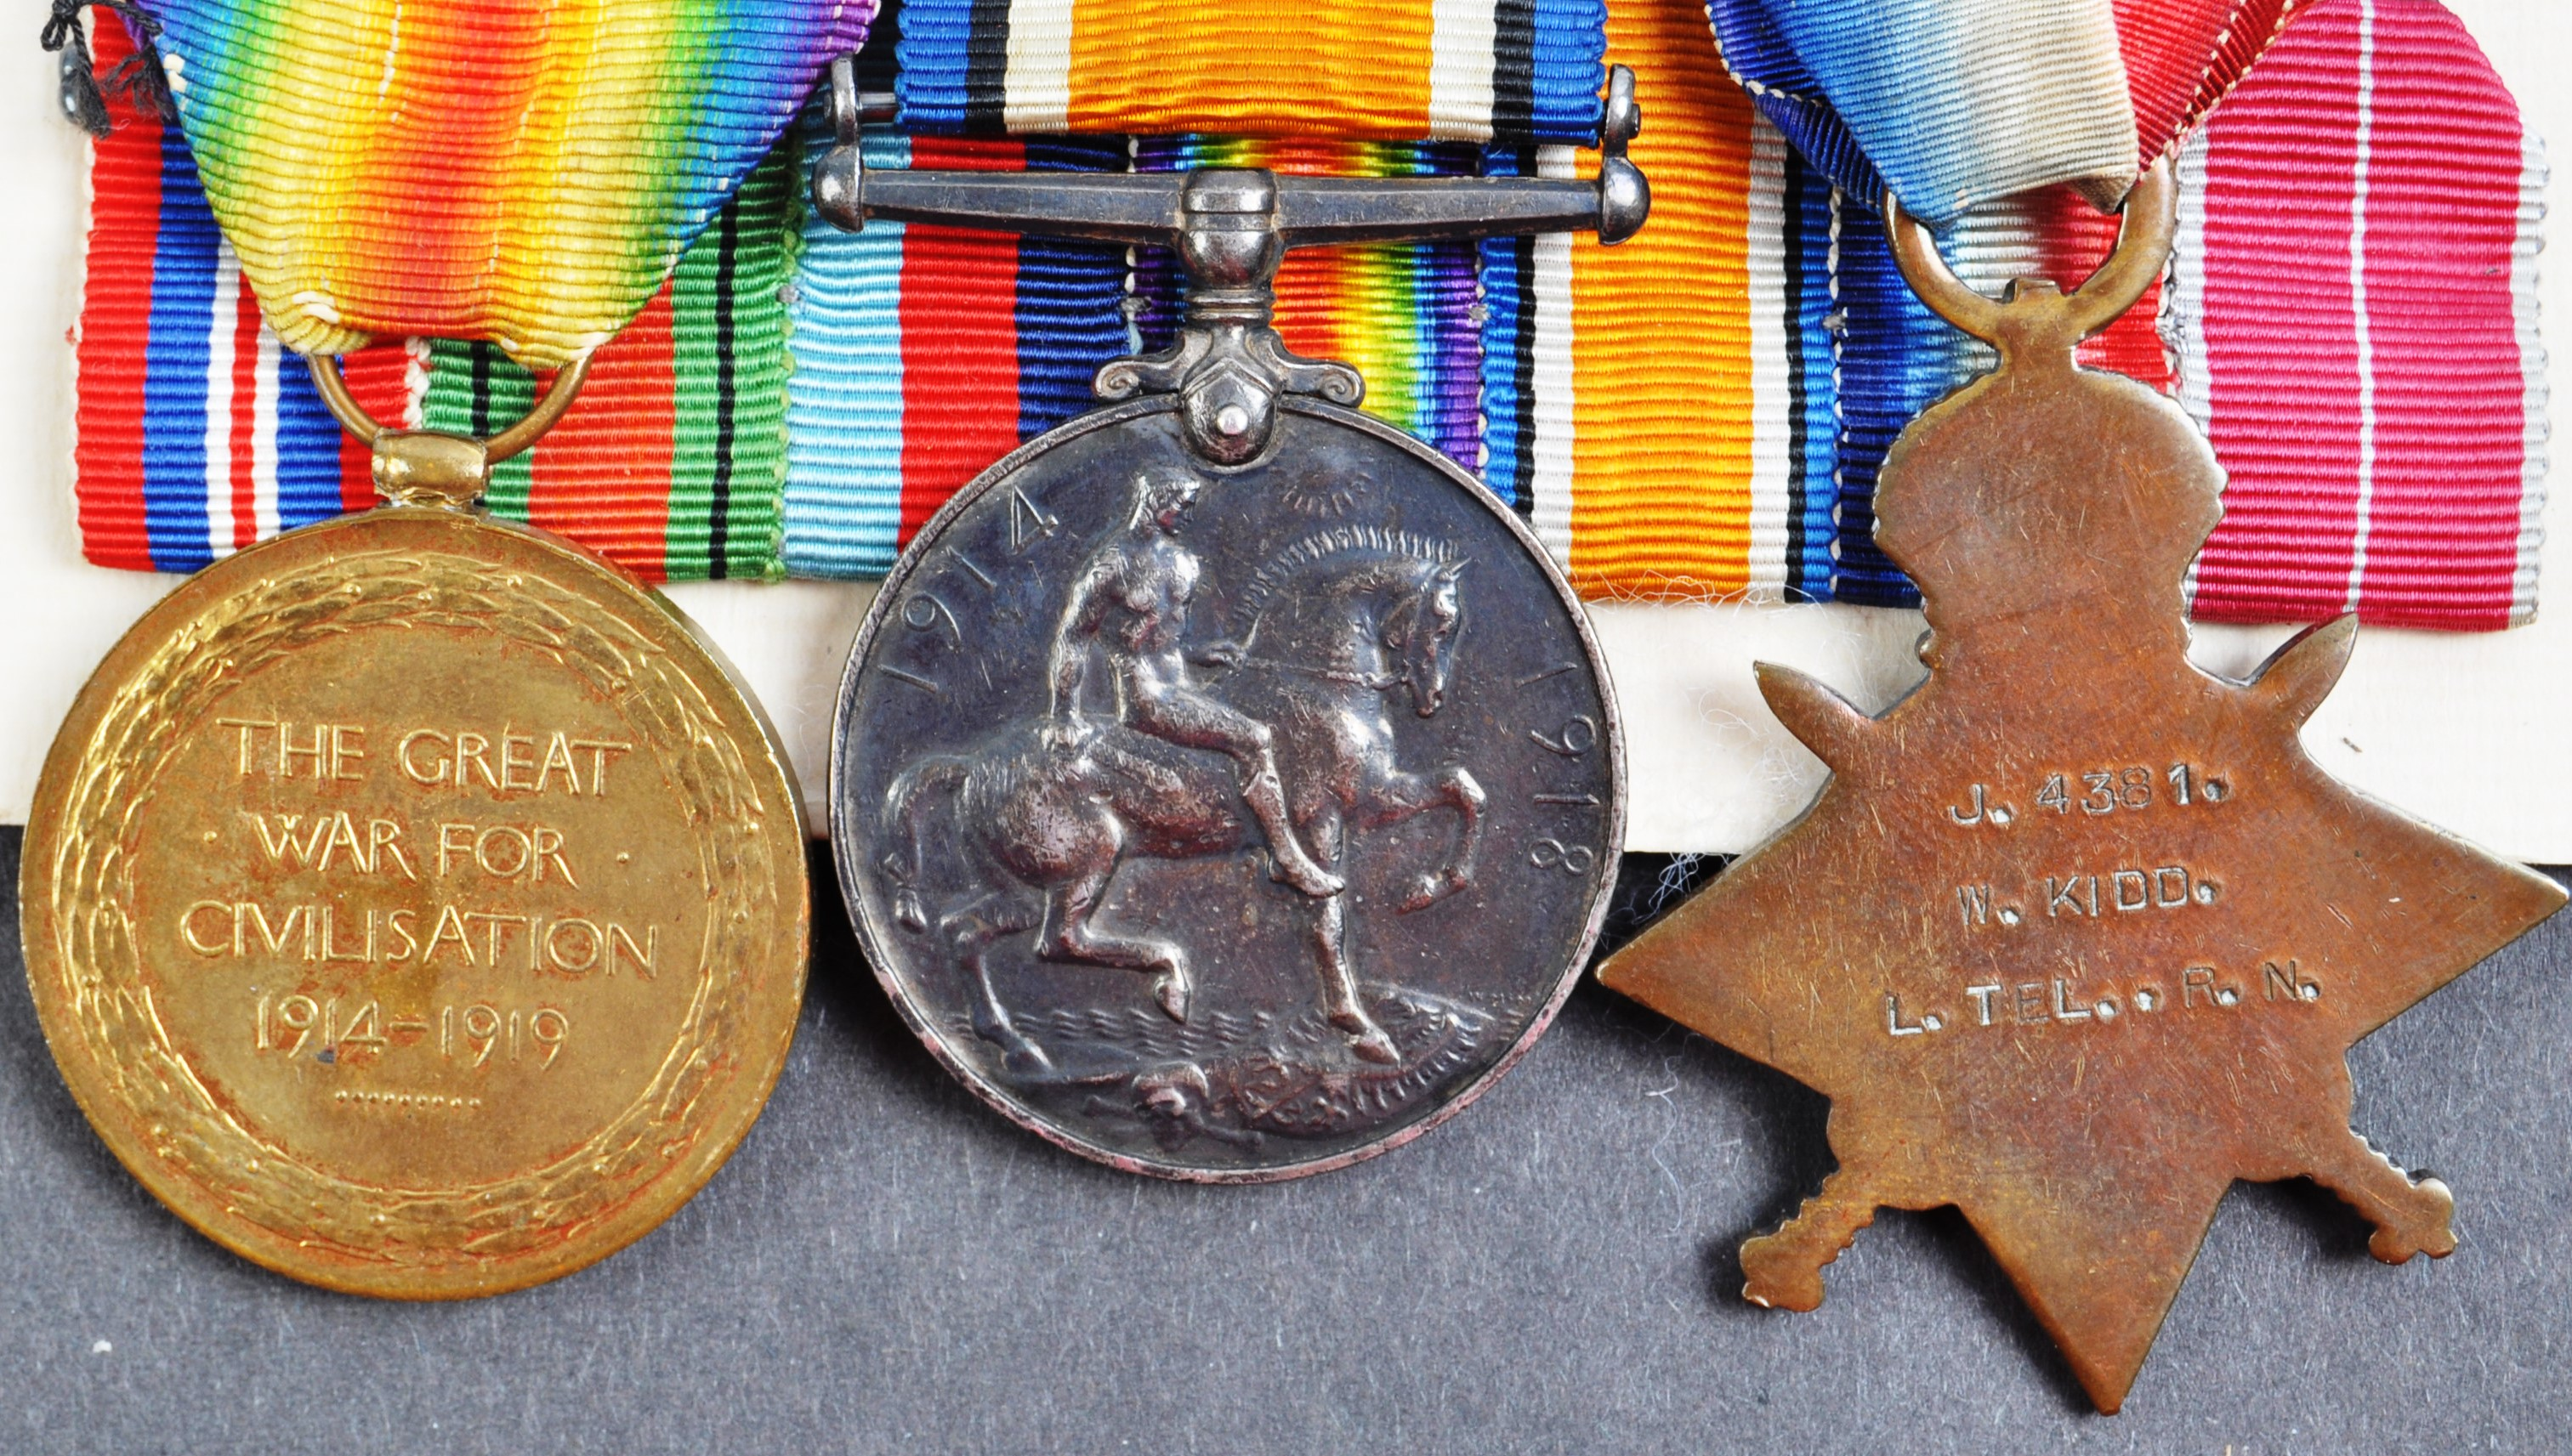 WWI & WWII SECOND WORLD WAR MEDAL GROUP - ROYAL NAVY - Image 2 of 5